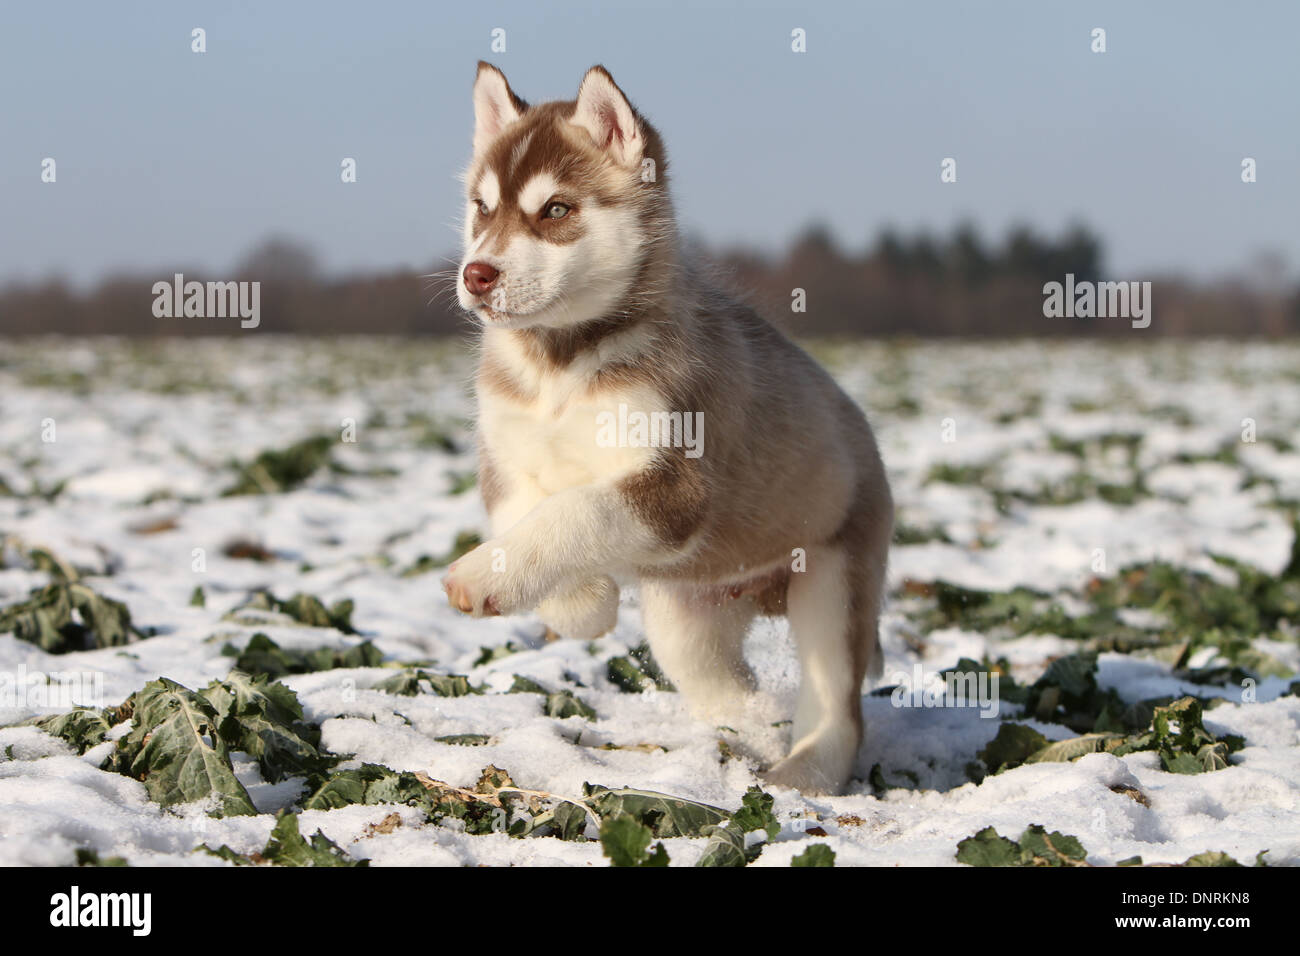 Dog Siberian Husky Puppy Running In The Snow Stock Photo 65059268